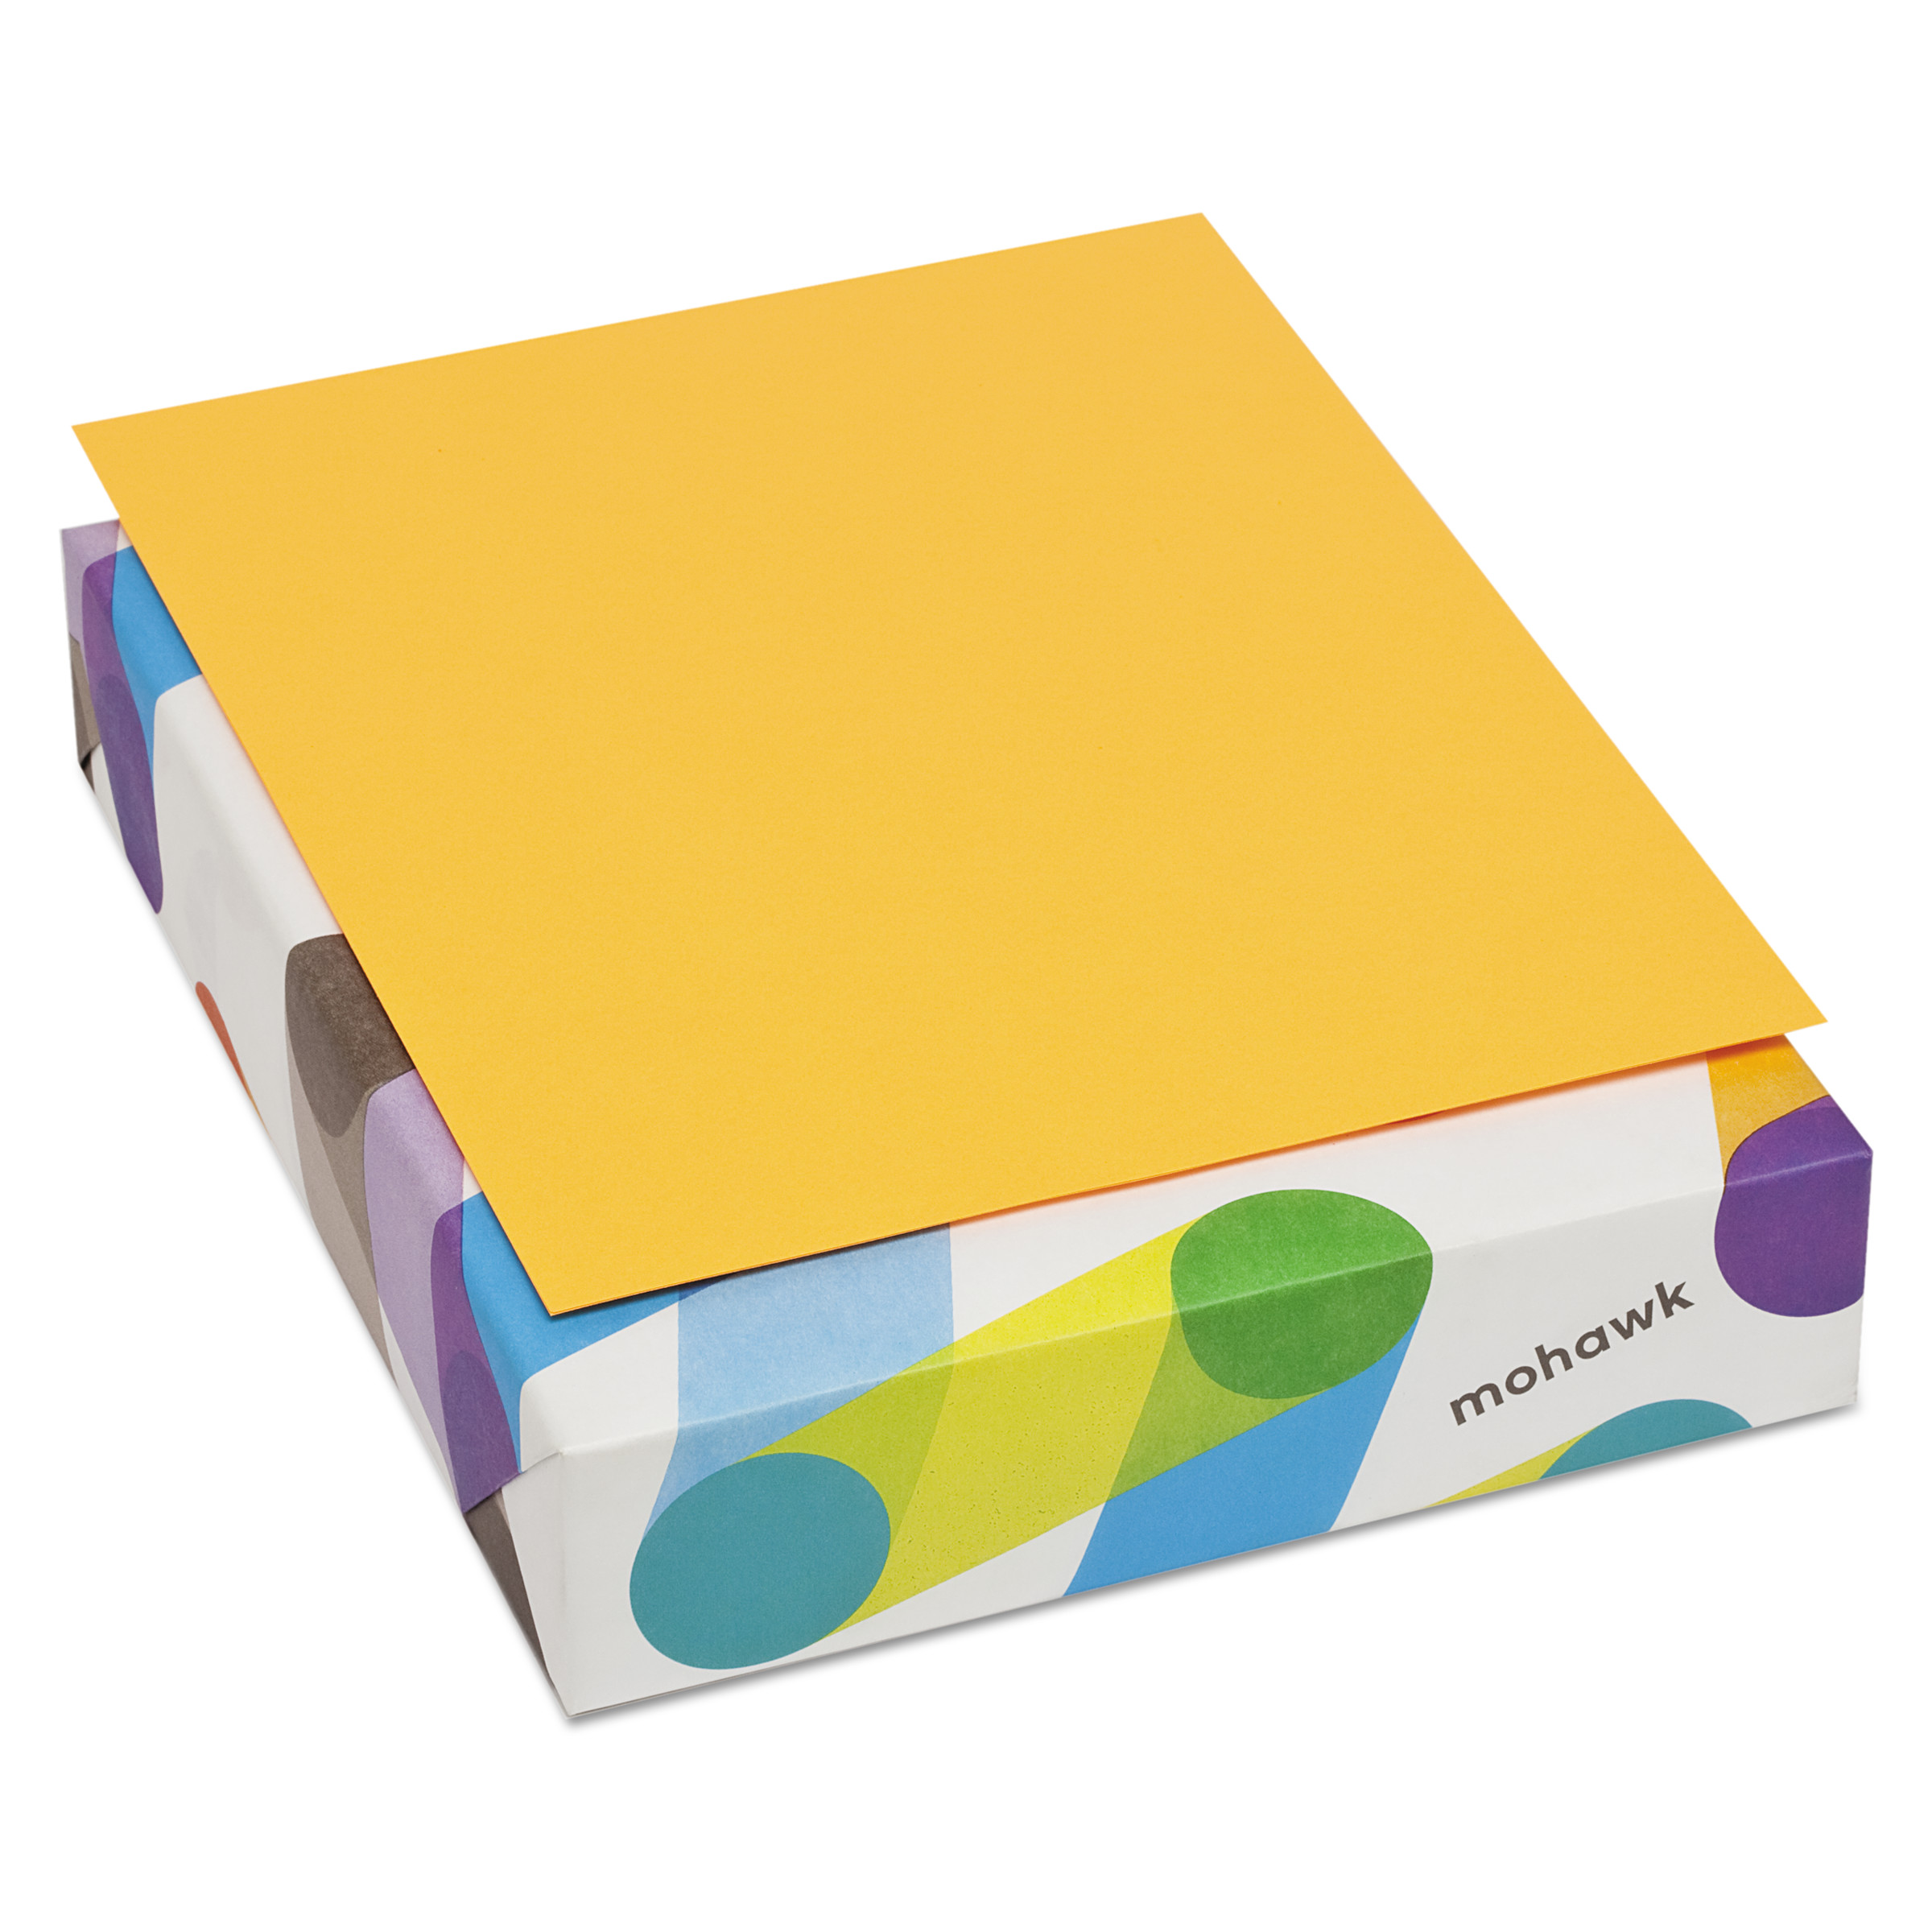 Mohawk BriteHue Multipurpose Colored Paper, 24lb, 8 1/2 x 11, Ultra Orange, 500 Sheets -MOW102442